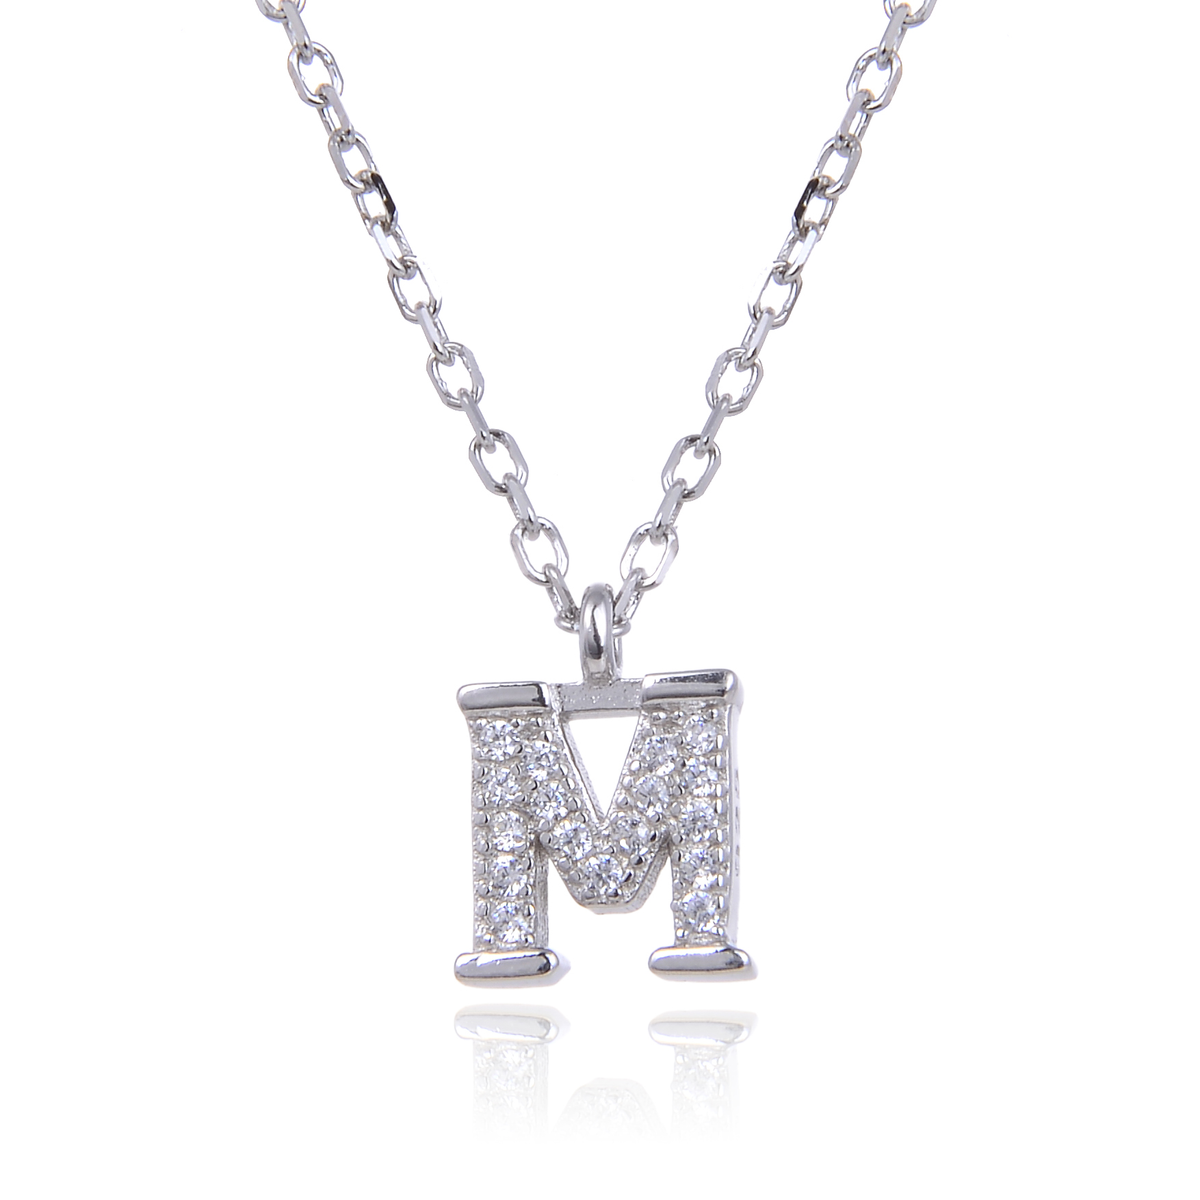 Letter M Necklace - penelope-it.com